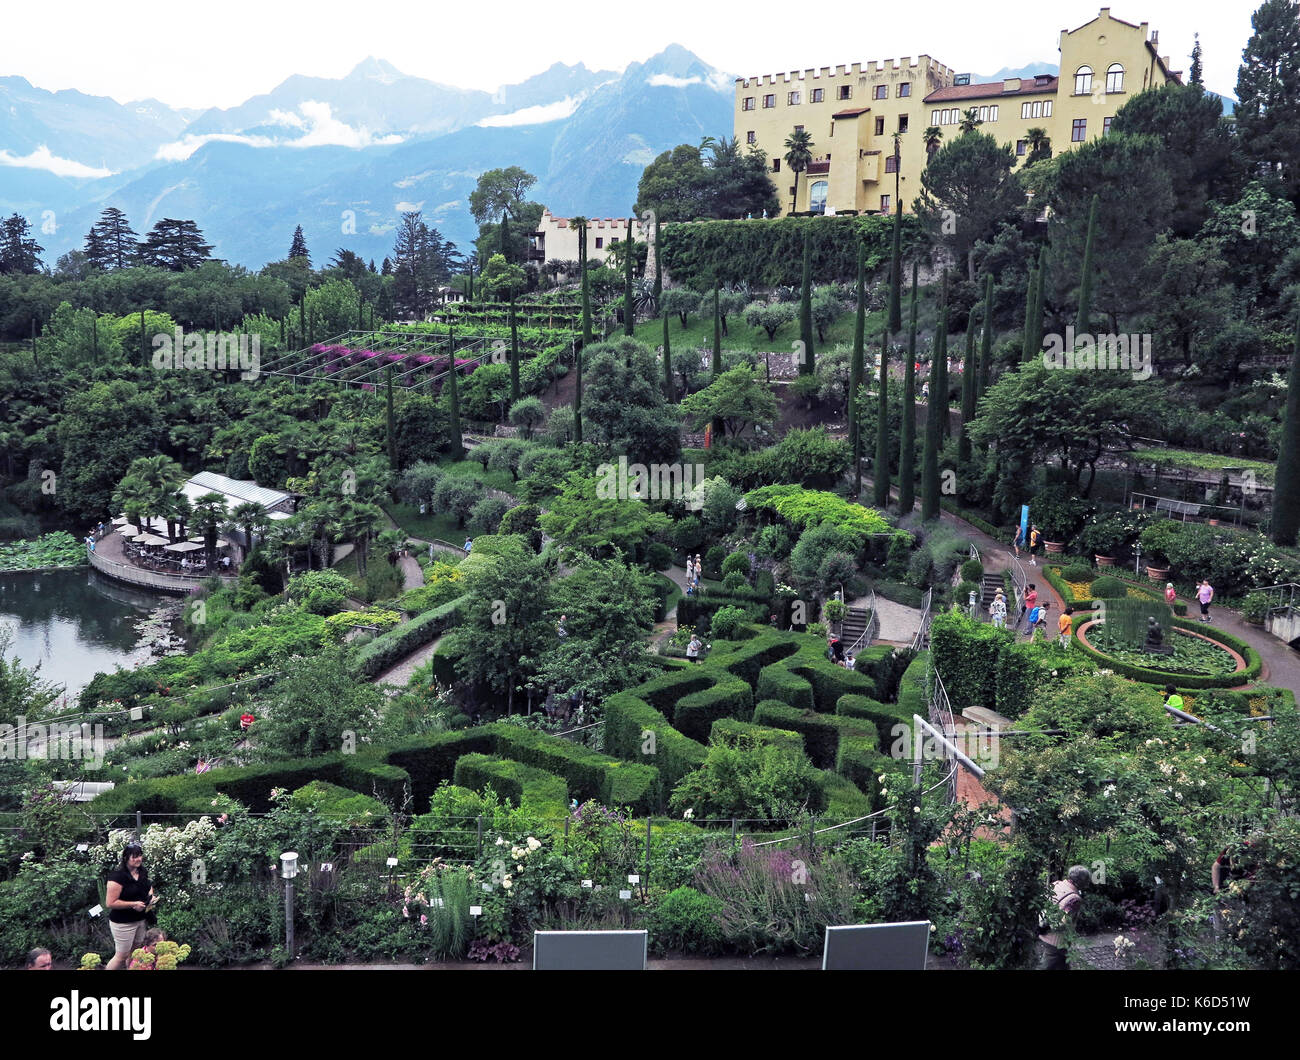 The historic botanic gardens around Trauttmannsdorf Palace are one of the most important attractions in the town of Meran in South Tyrol. View over the gardens to the Palace (Kaiserin Elisabeth of Austro-Hungary spent a lot of time here during the second half of the 19th century). Taken 14.06.2017. Photo: Reinhard Kaufhold/dpa-Zentralbild/ZB | usage worldwide - Stock Image